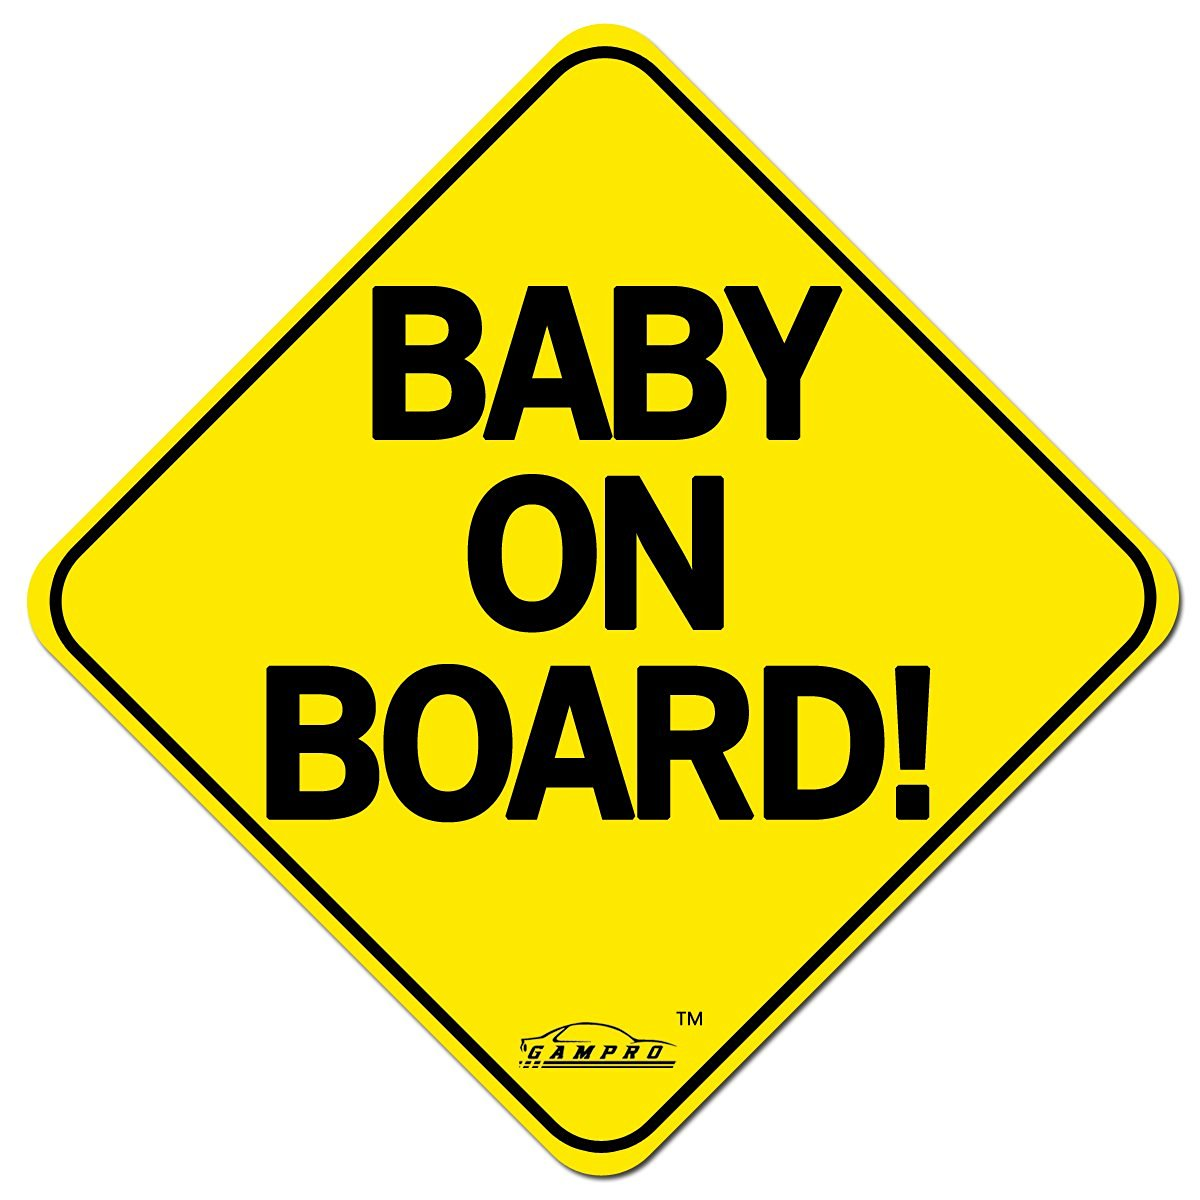 """GAMPRO """"BABY ON BOARD"""" Reflective Vehicle Bumper Magnet, Reflective Vehicle Car Sign Sticker Bumper for New Parents, Reduce Road Rage and Accidents for New Parent and Baby(1 Pack)"""